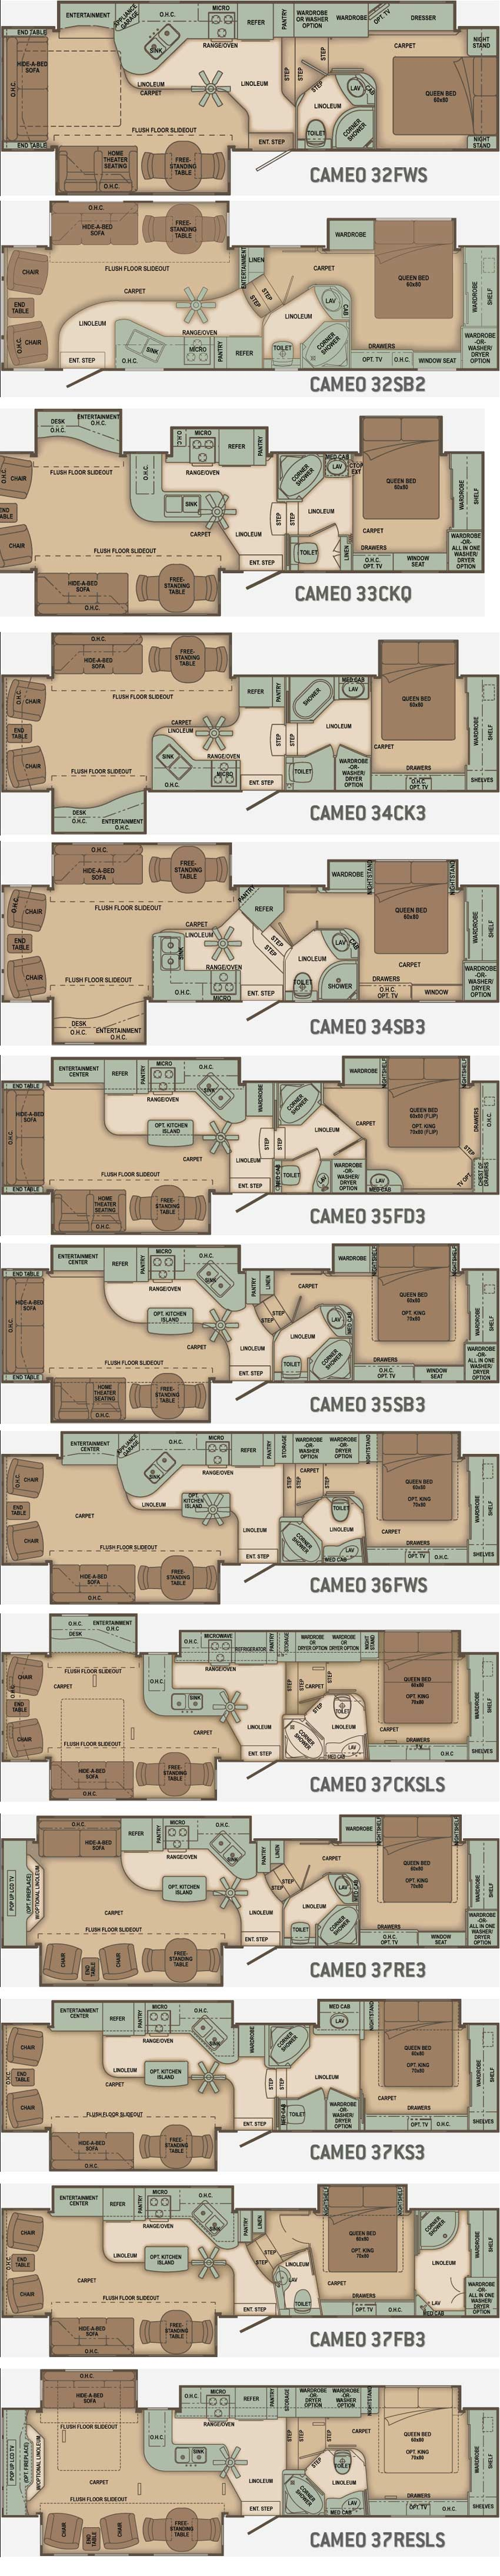 Carriage Cameo Fifth Wheel Floorplans Large Picture